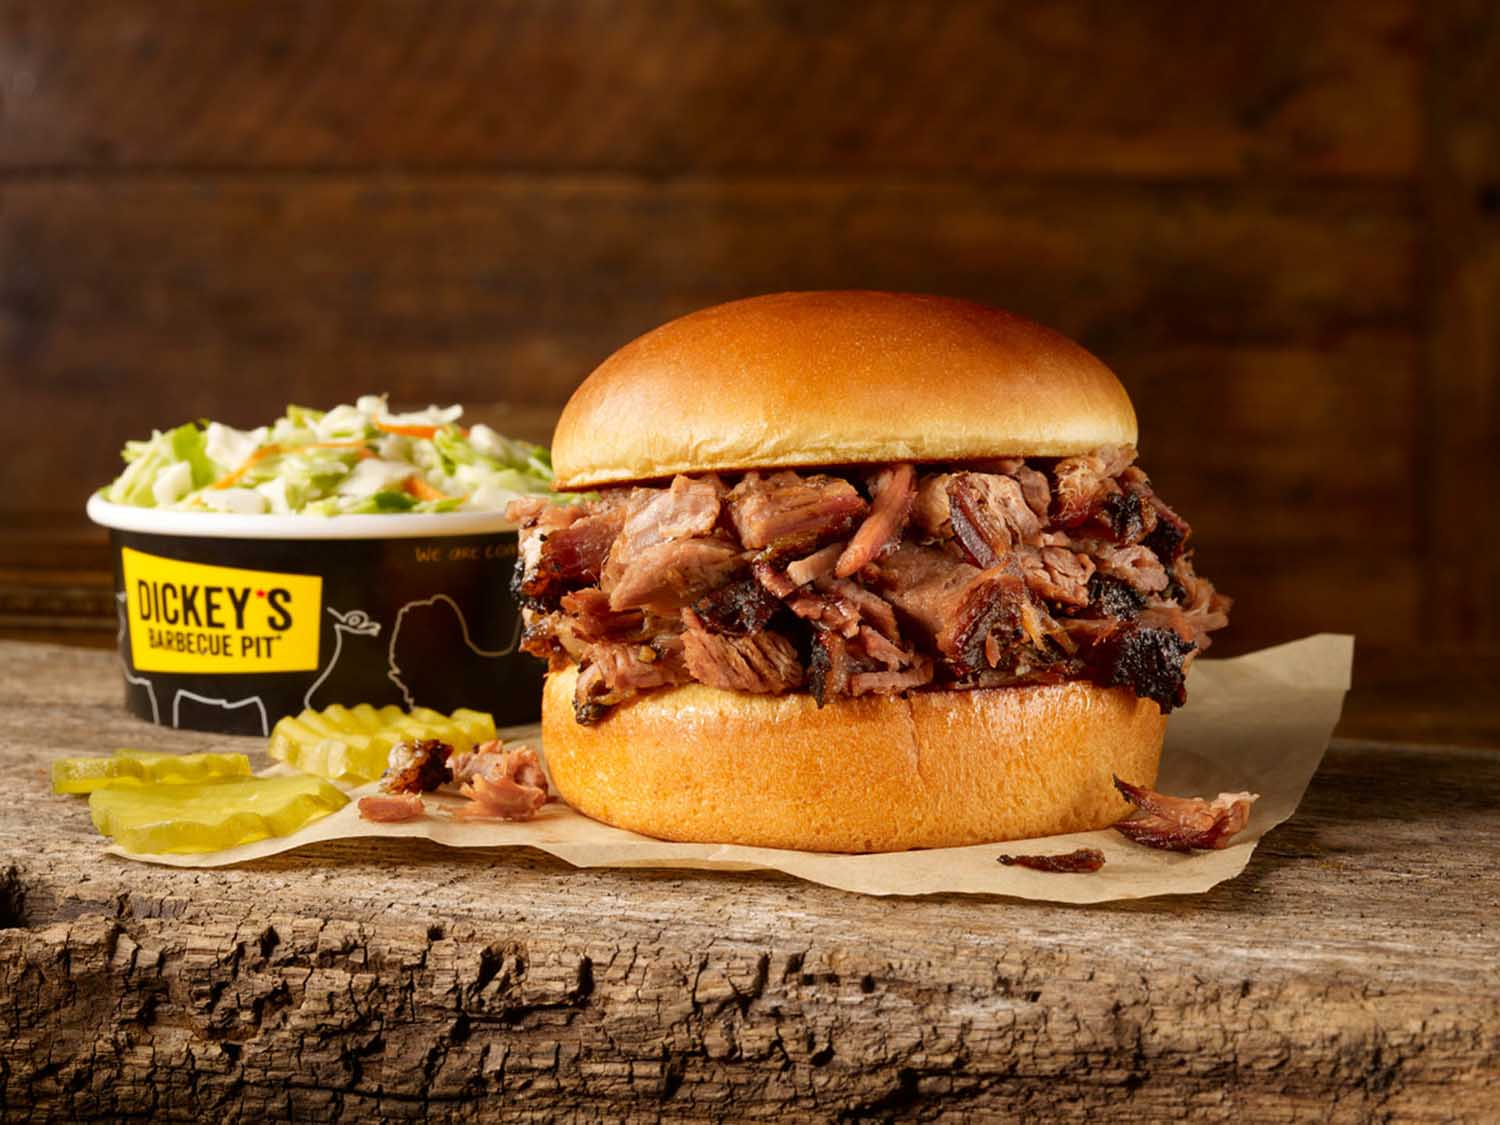 Newark Advocate: Dickey's Barbecue Pit to open on North 21st Street